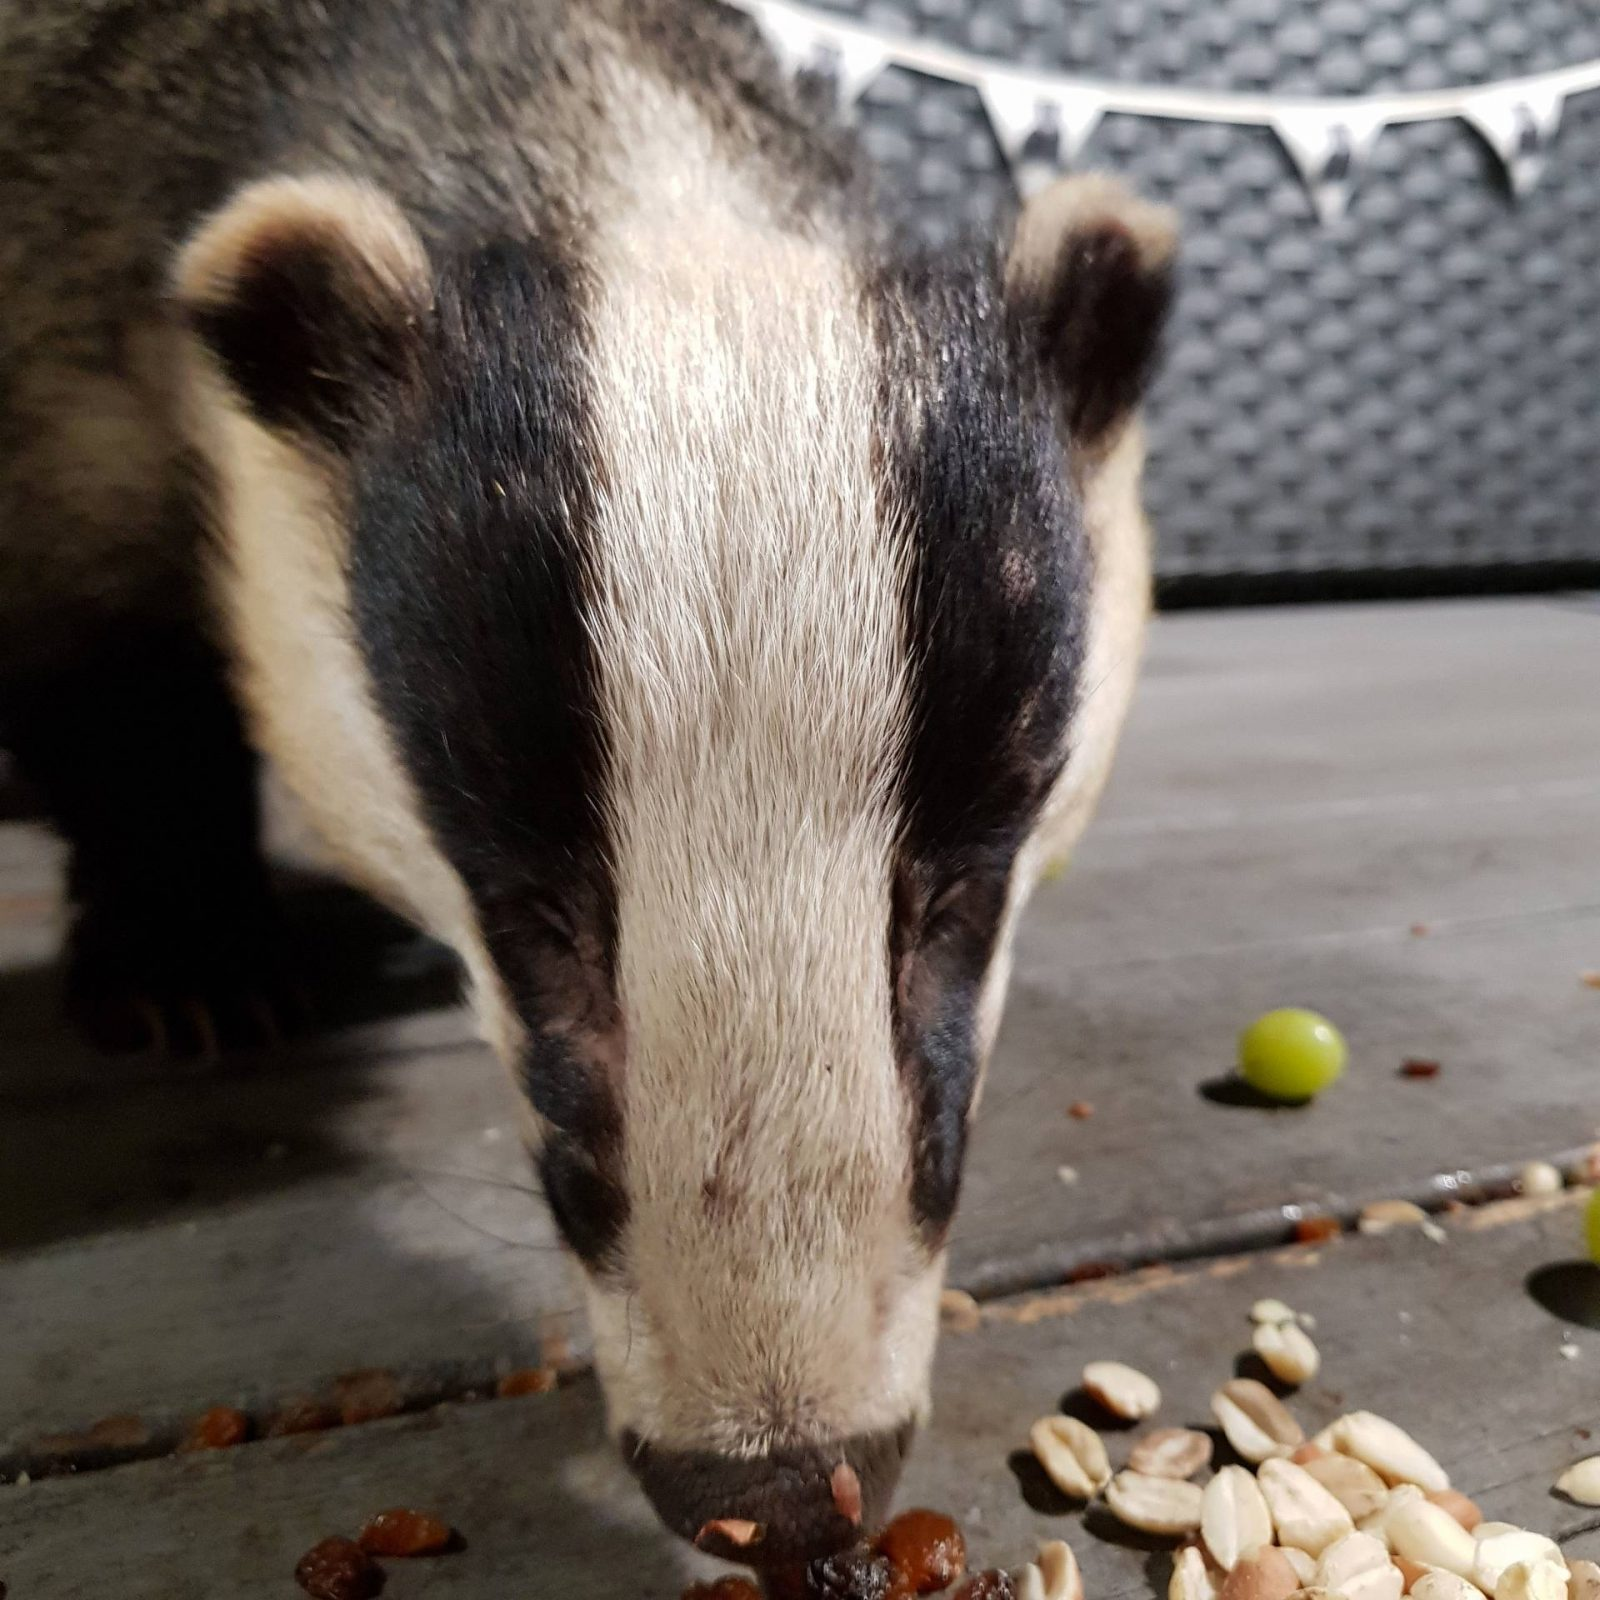 Mr Lumpy, badger eating nuts